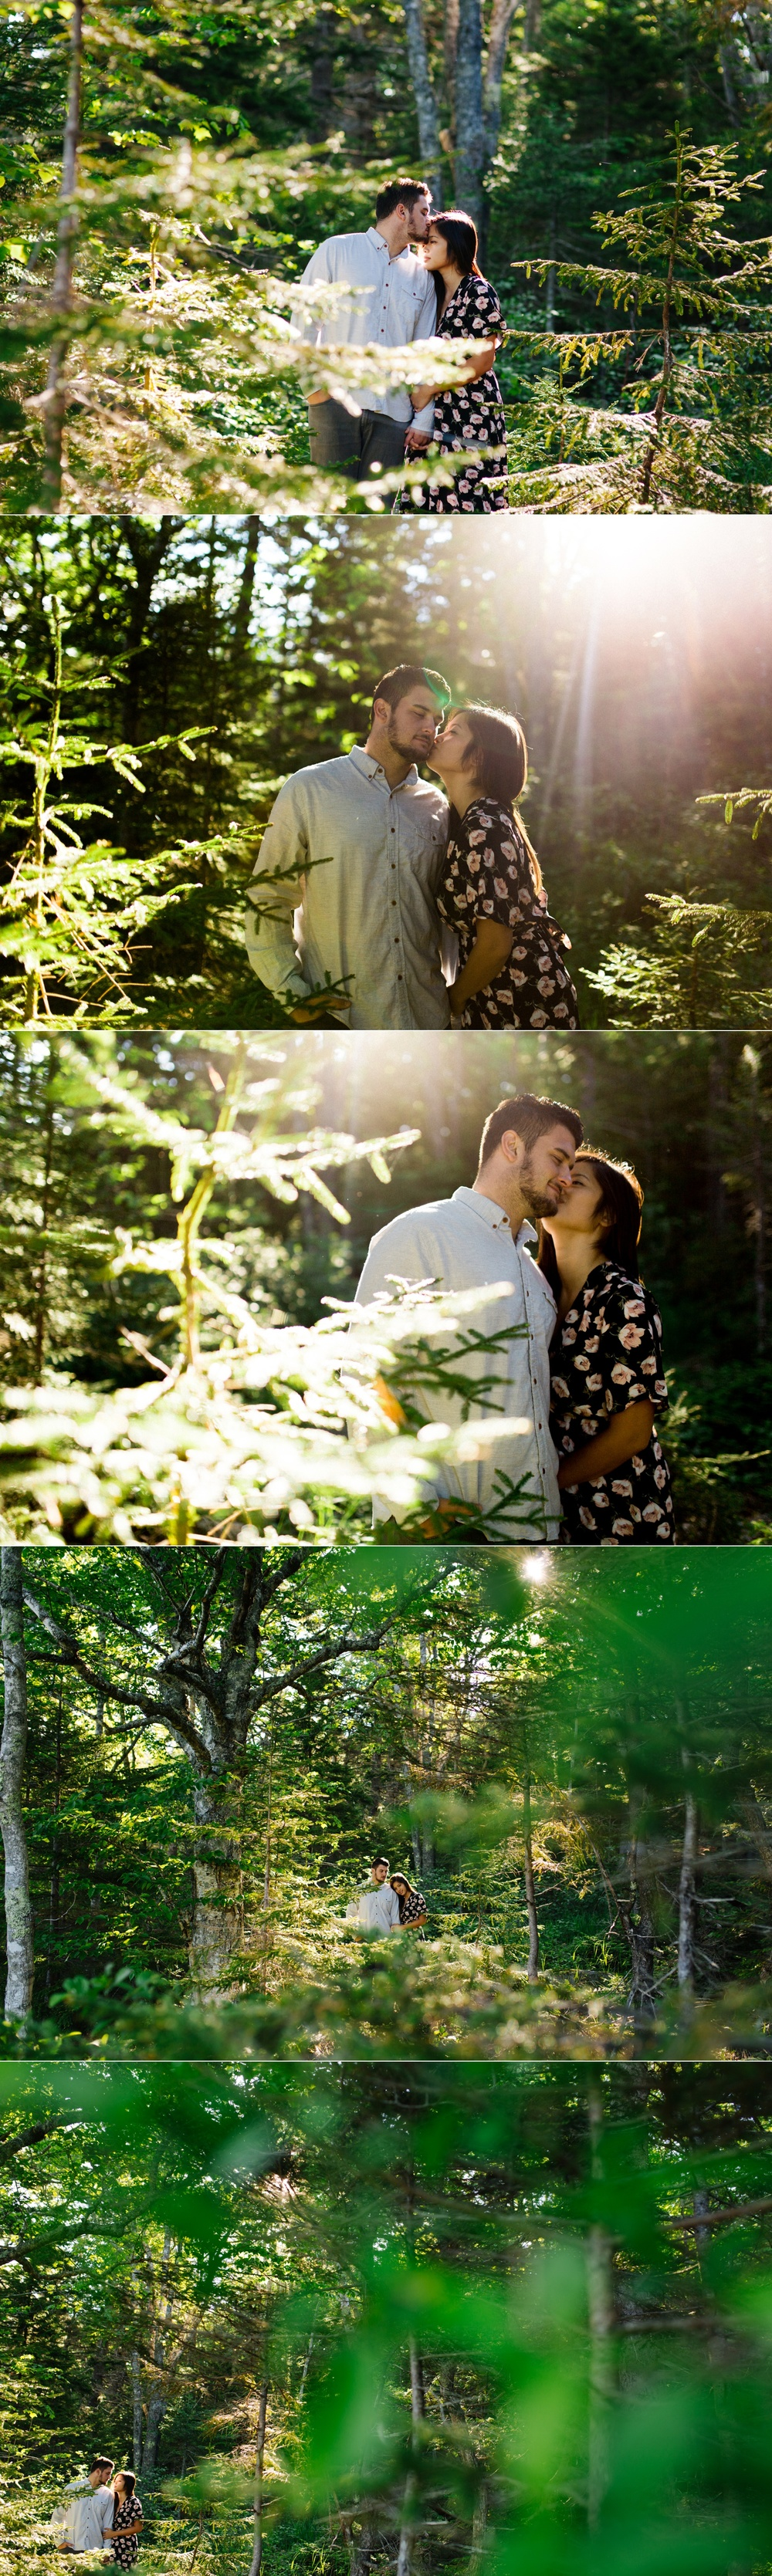 jake and jill acacdia national park engagement session cadillac mountain engagement session jordan pond engagement session maine engagement session jake and katie_0032